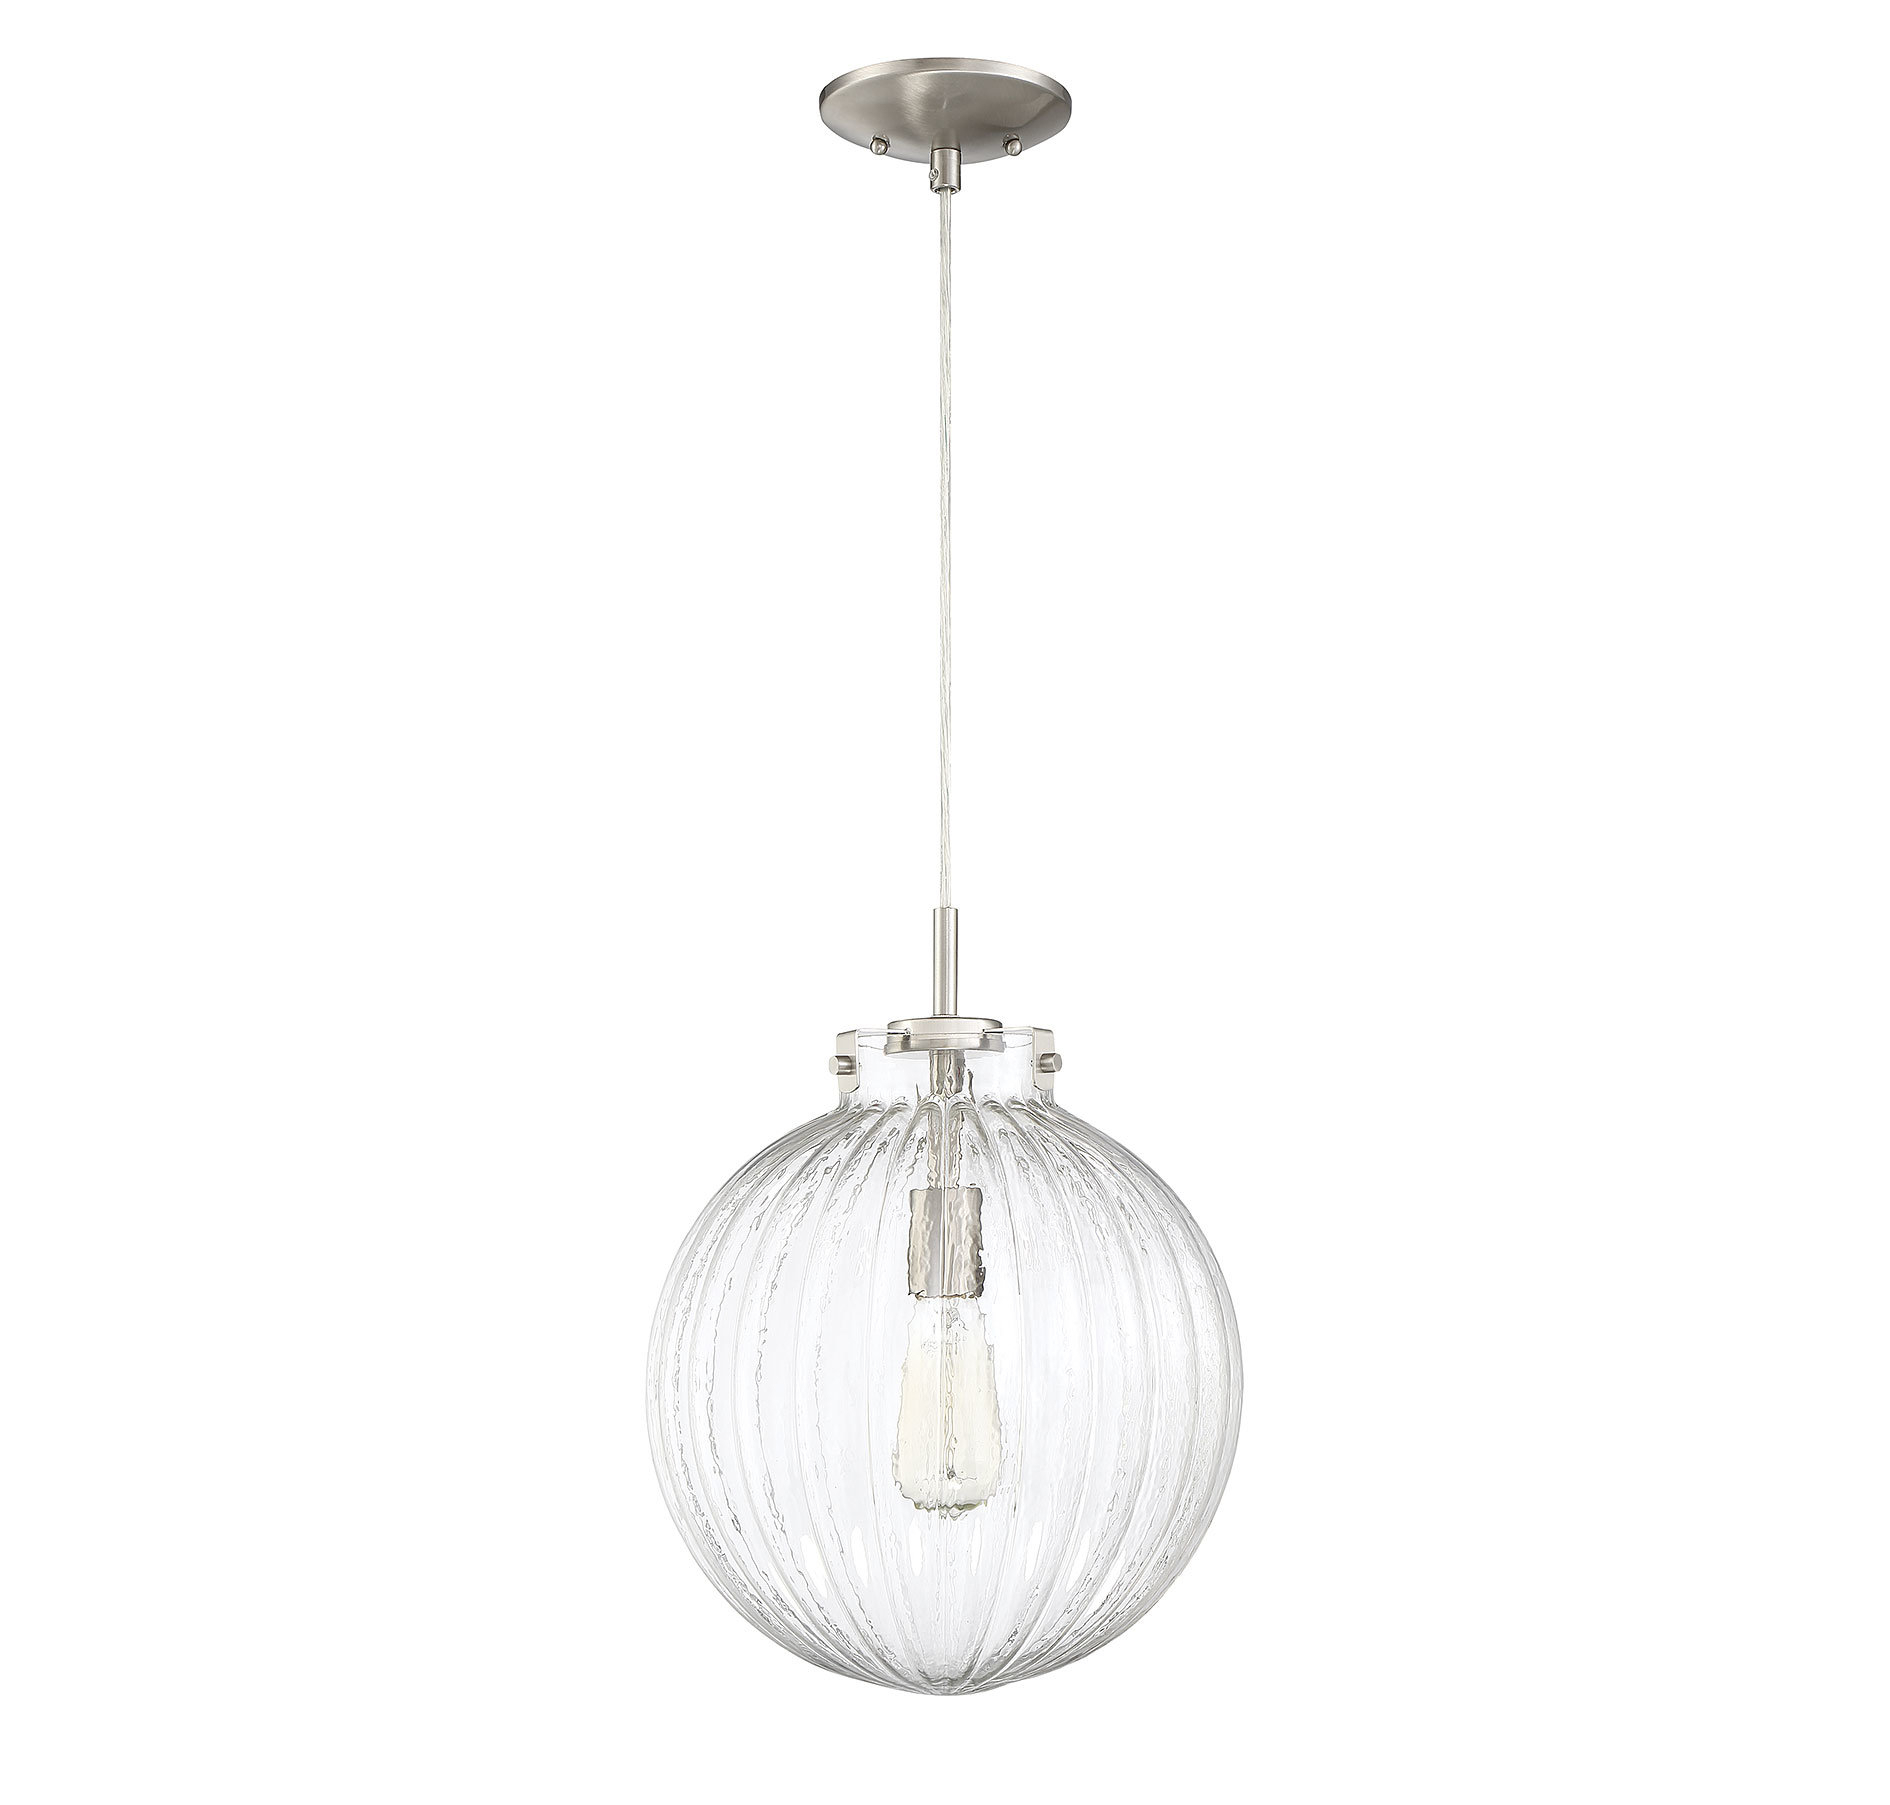 Nevels 1 Light Single Globe Pendant Intended For Cayden 1 Light Single Globe Pendants (View 21 of 30)